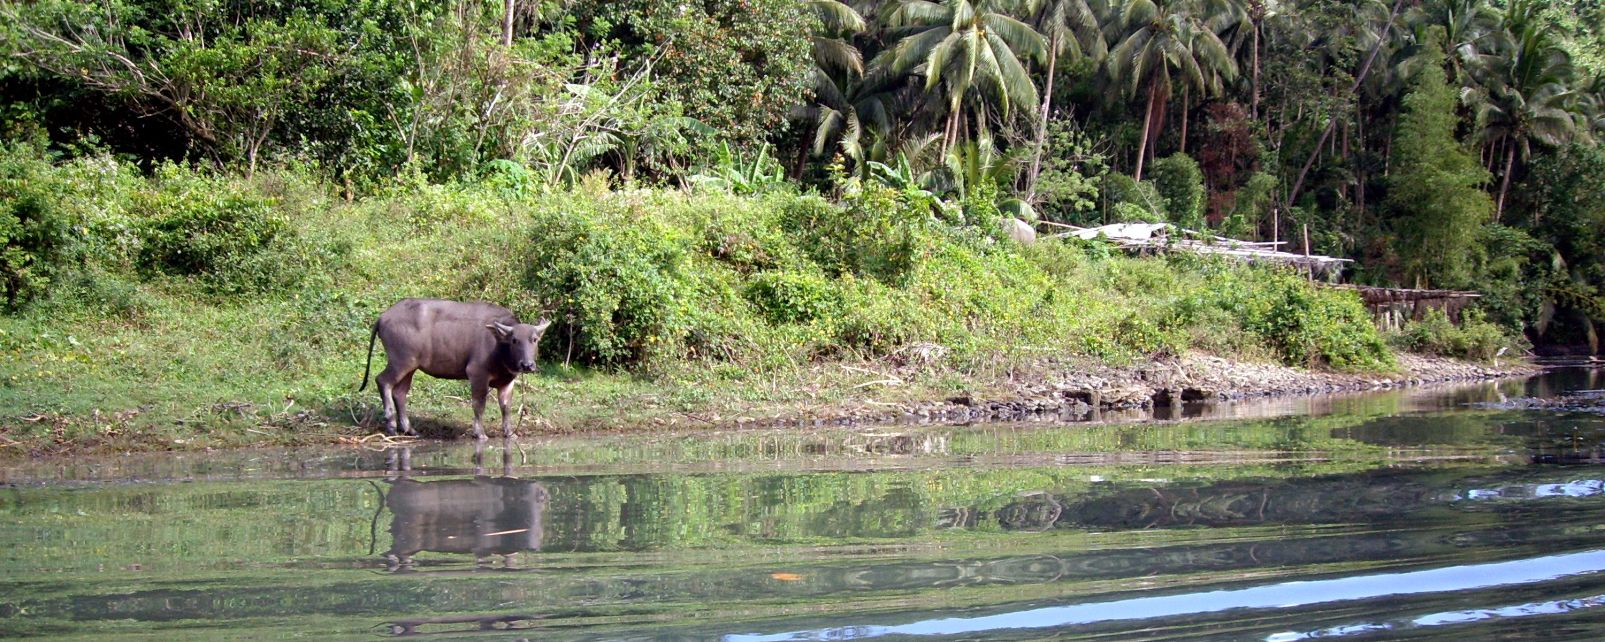 Les paysages, buffle, animal, faune, bovin, bétail, mammifère, philippines, rivière, Pagsanjan, Asie